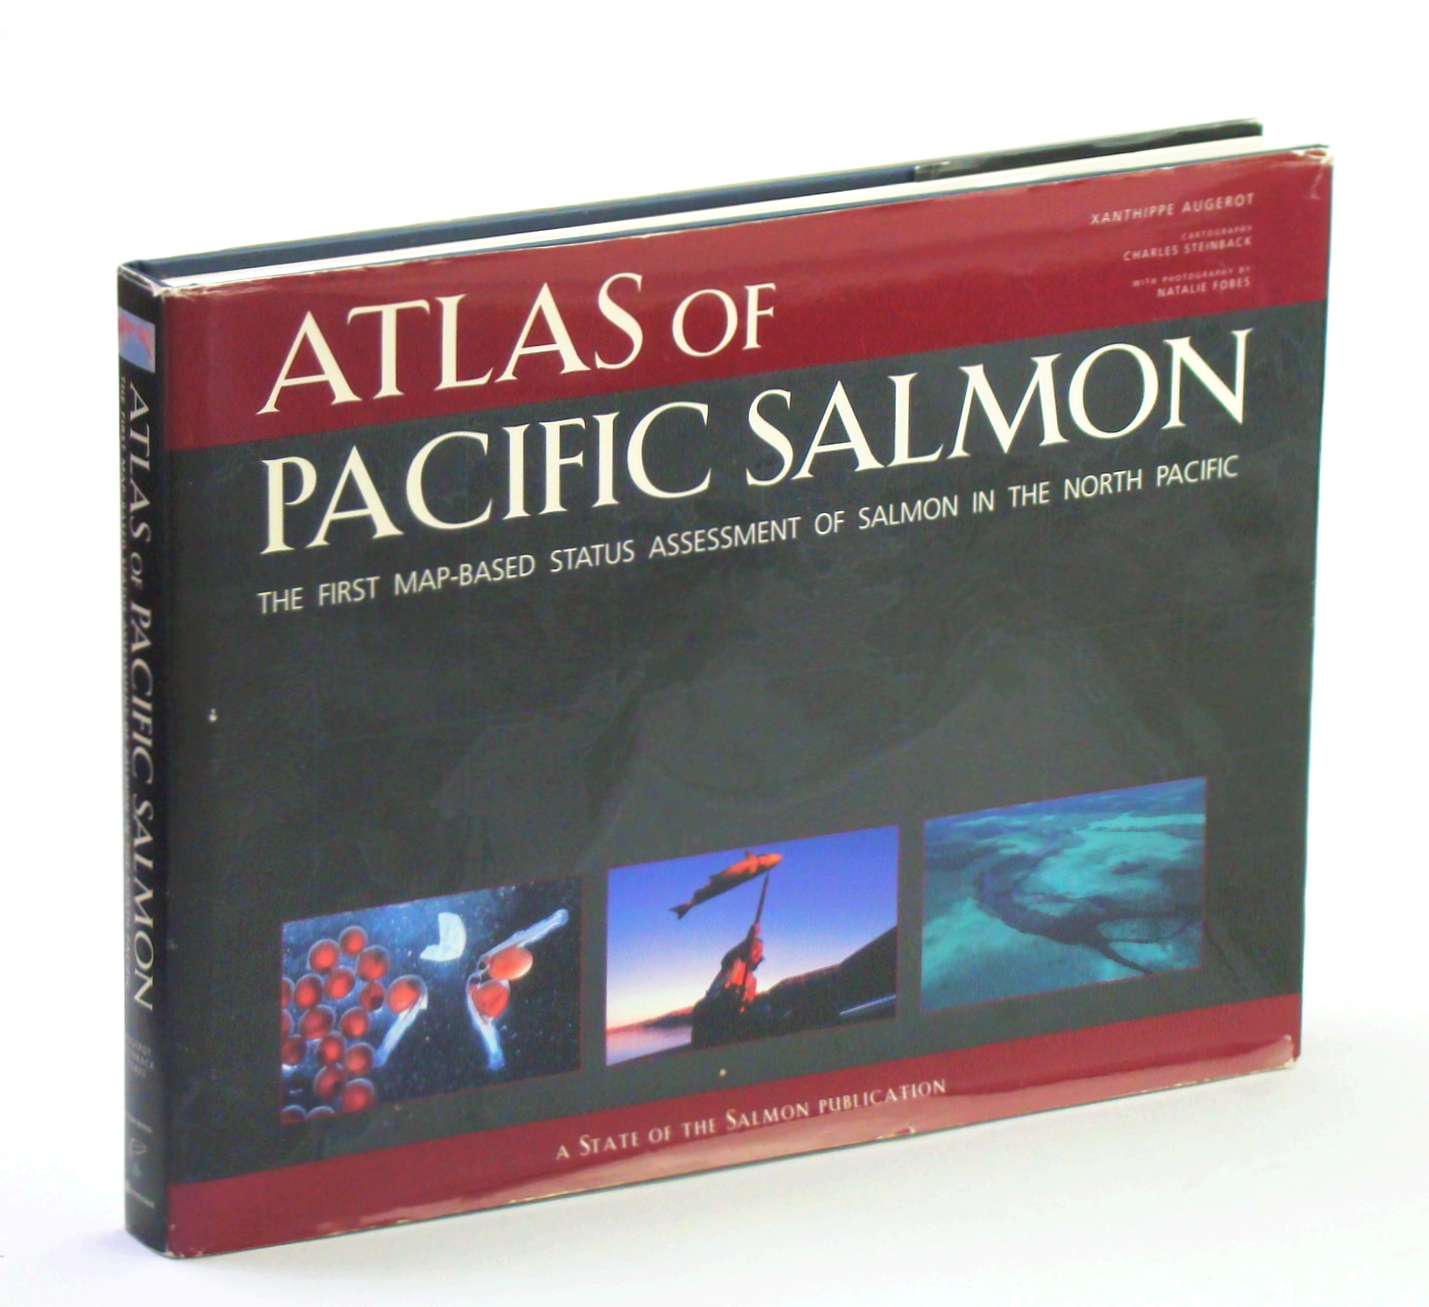 Image for Atlas of Pacific Salmon: The First Map-Based Status Assessment of Salmon in the North Pacific